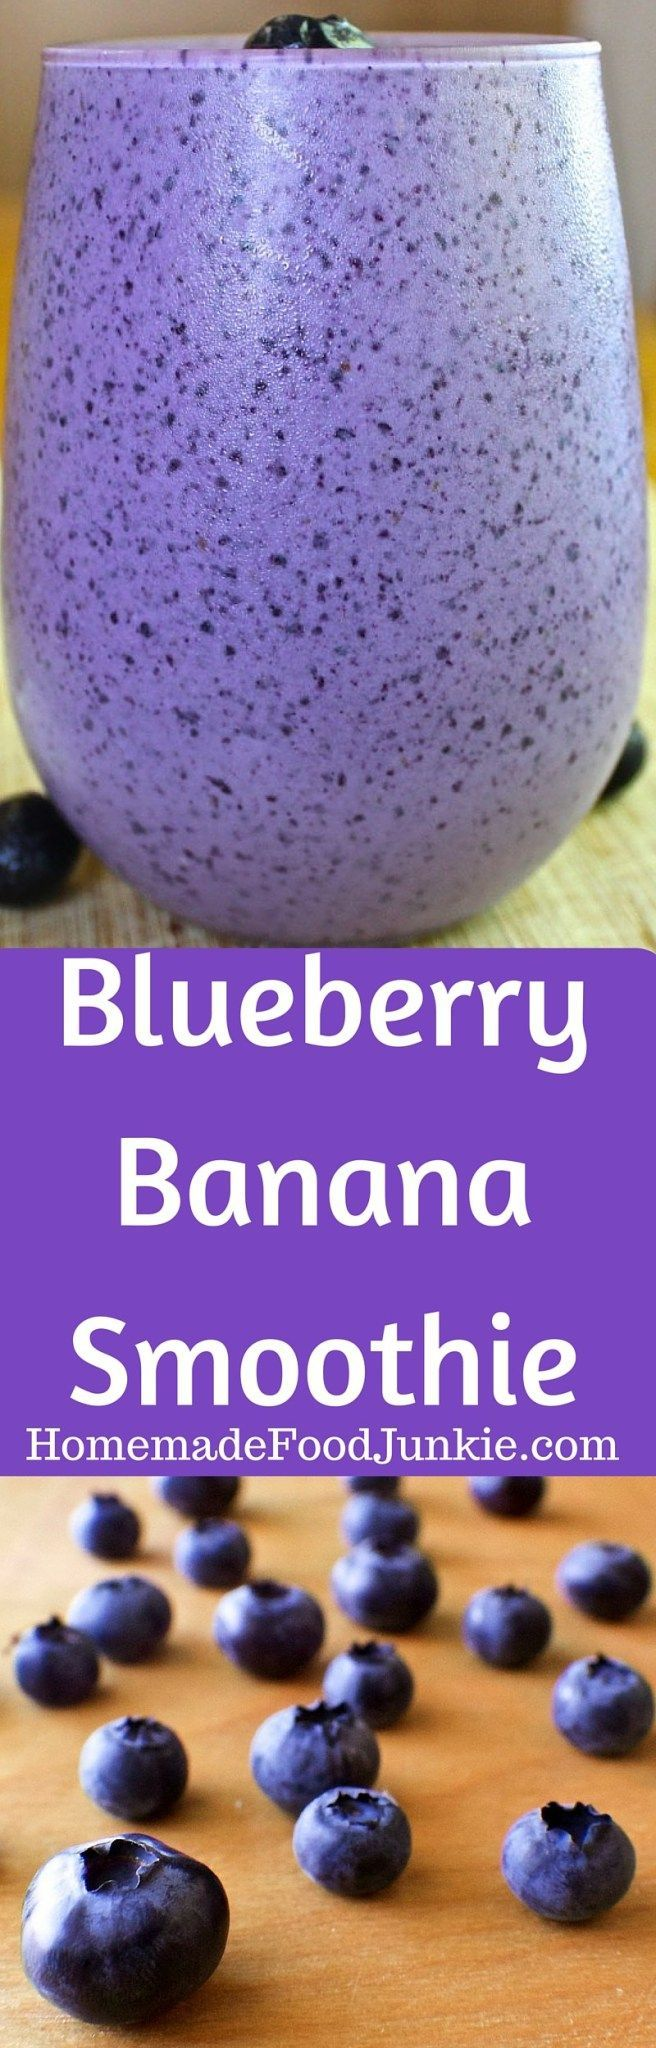 Blueberry Banana Smoothie is packed with antioxidants and protein! This delicious smoothie offers a wonderful blend of healthy nutrients and yummy fruits. This healthy breakfast is Low-Sodium, Vegetarian and Gluten-Free!